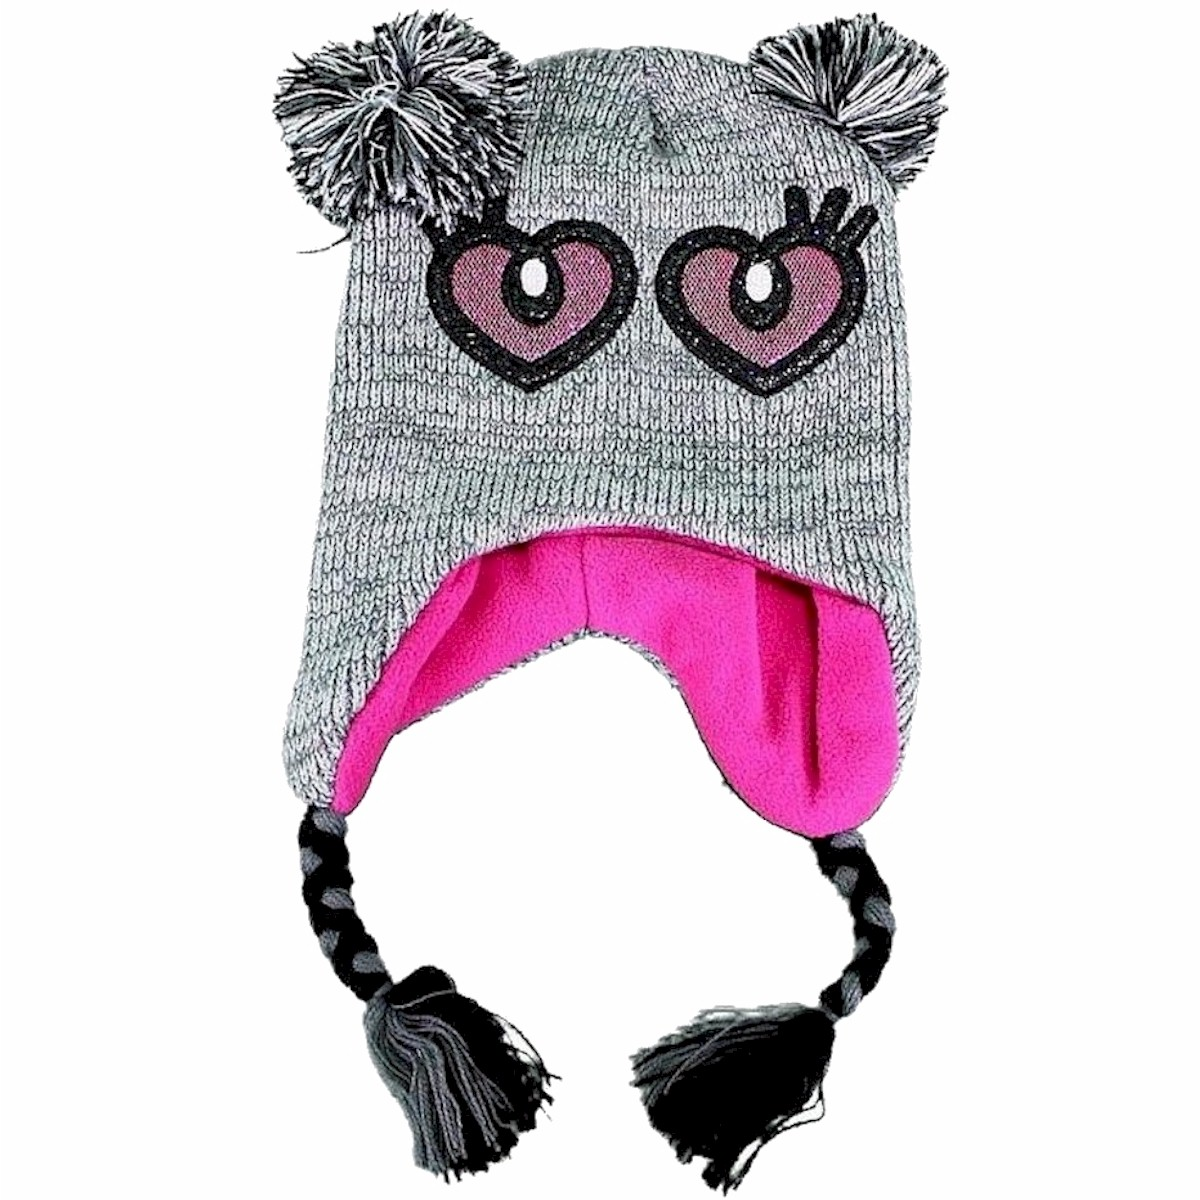 Image of Knit Fun Critter Girl's Scandinavian Winter Hat - Grey - Girls, Ages 7 & Up